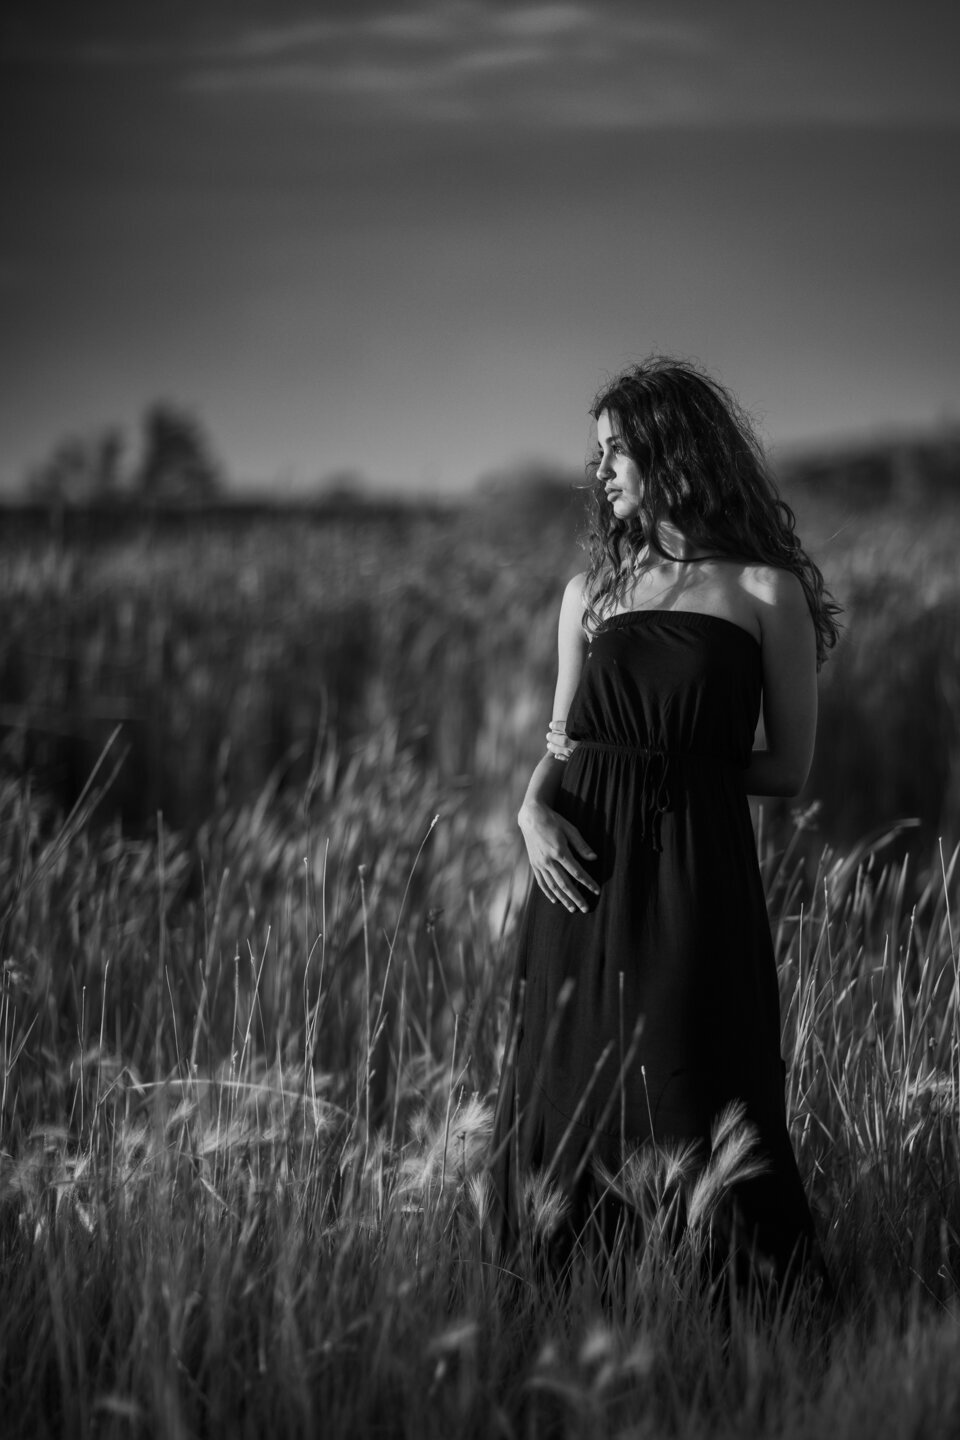 girl in black dress with long dark hair  looking towards the sunset, pictures taken at joels pond in billings montana, in cattails next to the pond.